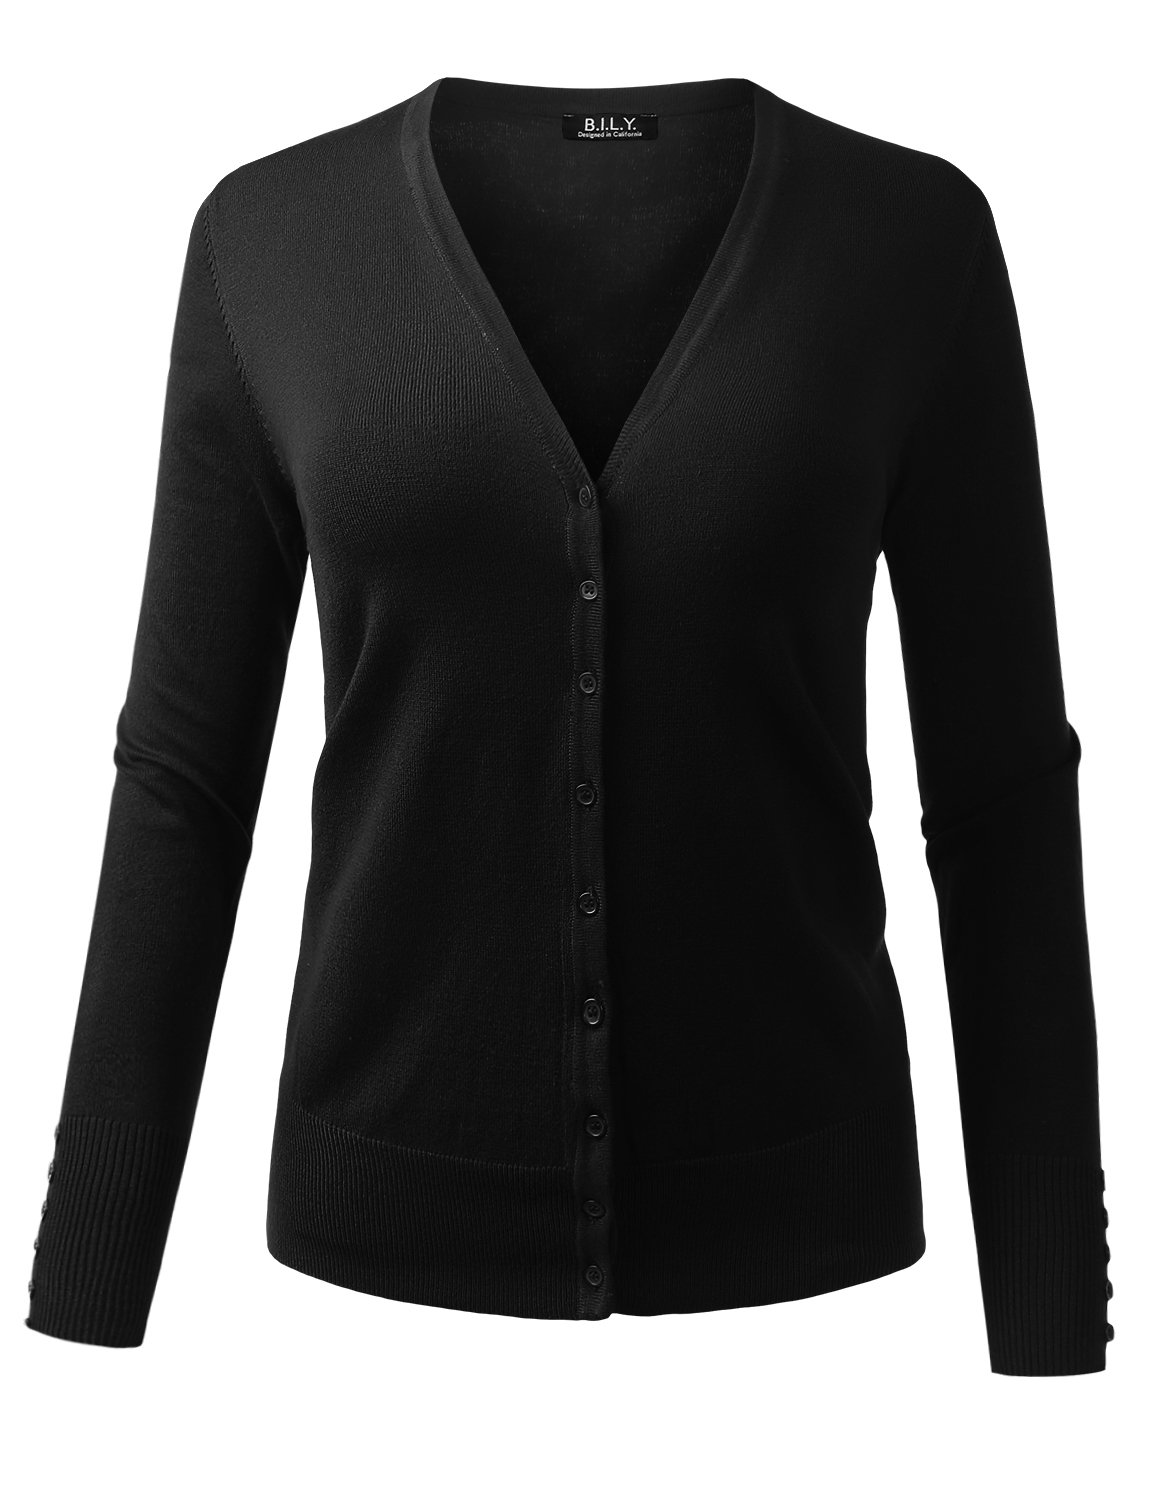 BILY Women's V-Neck Button Down Long Sleeve Classic Knit Cardigan Black Large